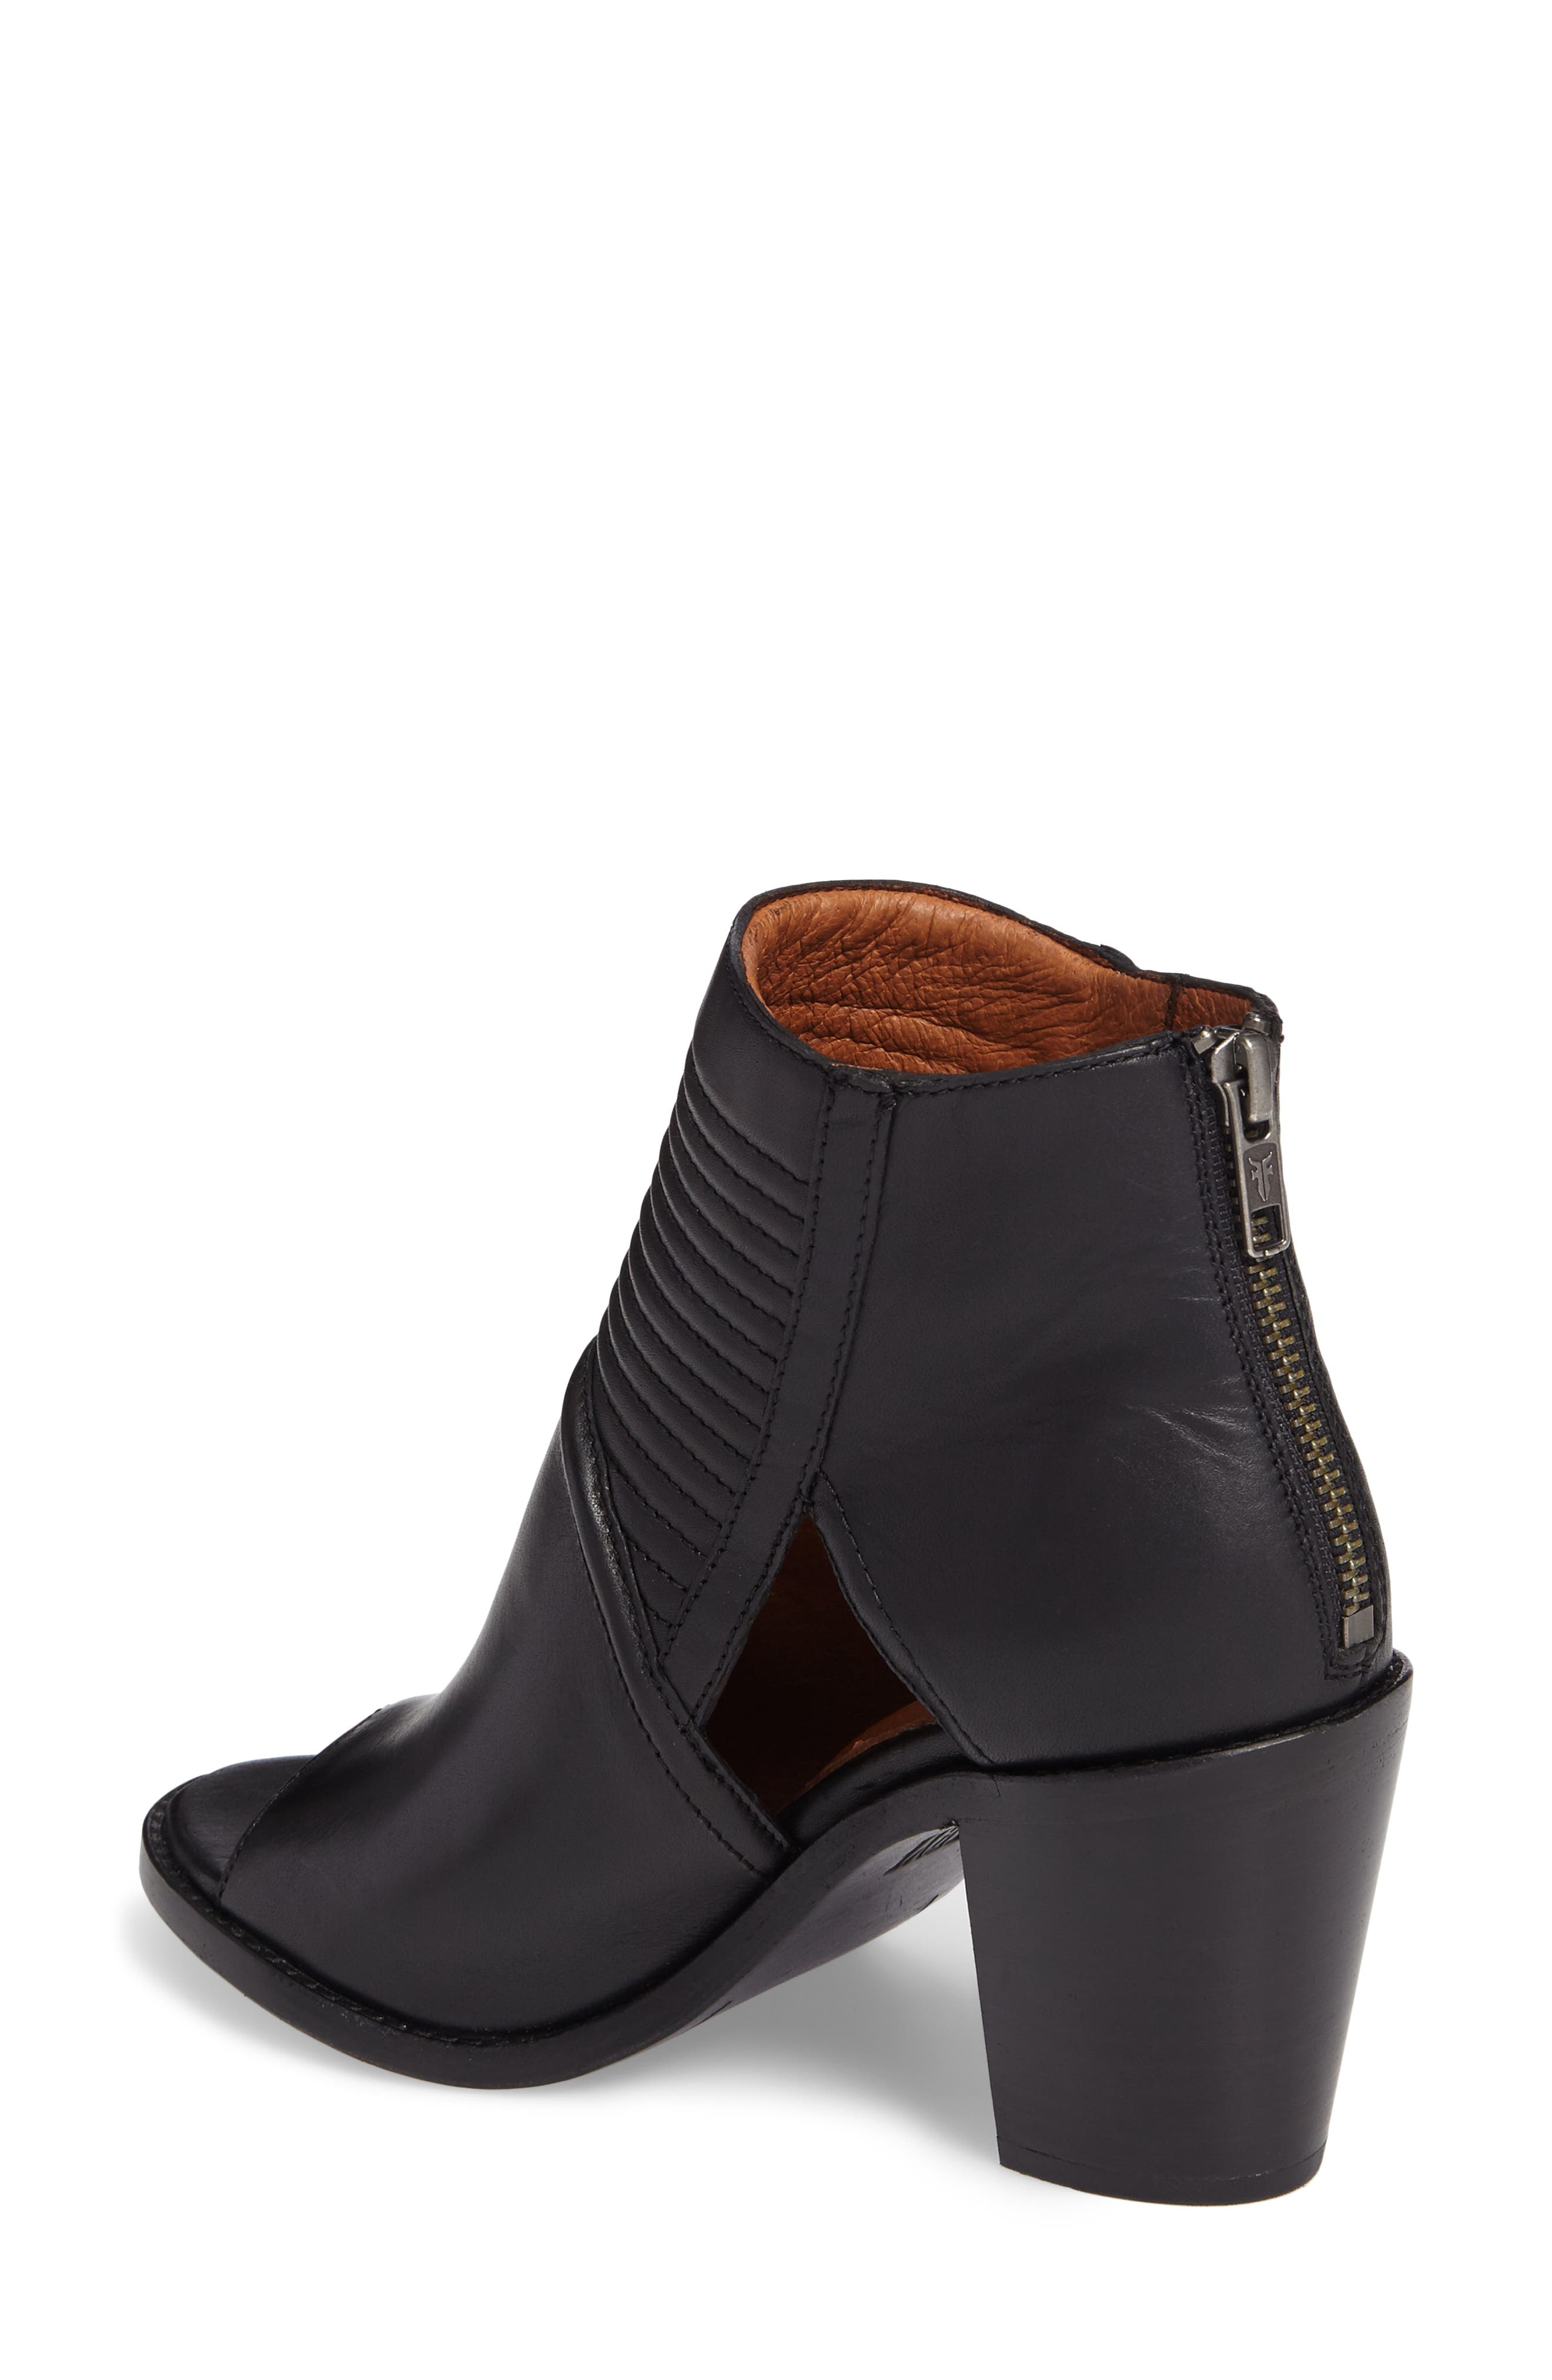 Alternate Image 2  - Frye Bailey Quilted Peep Toe Bootie (Women)